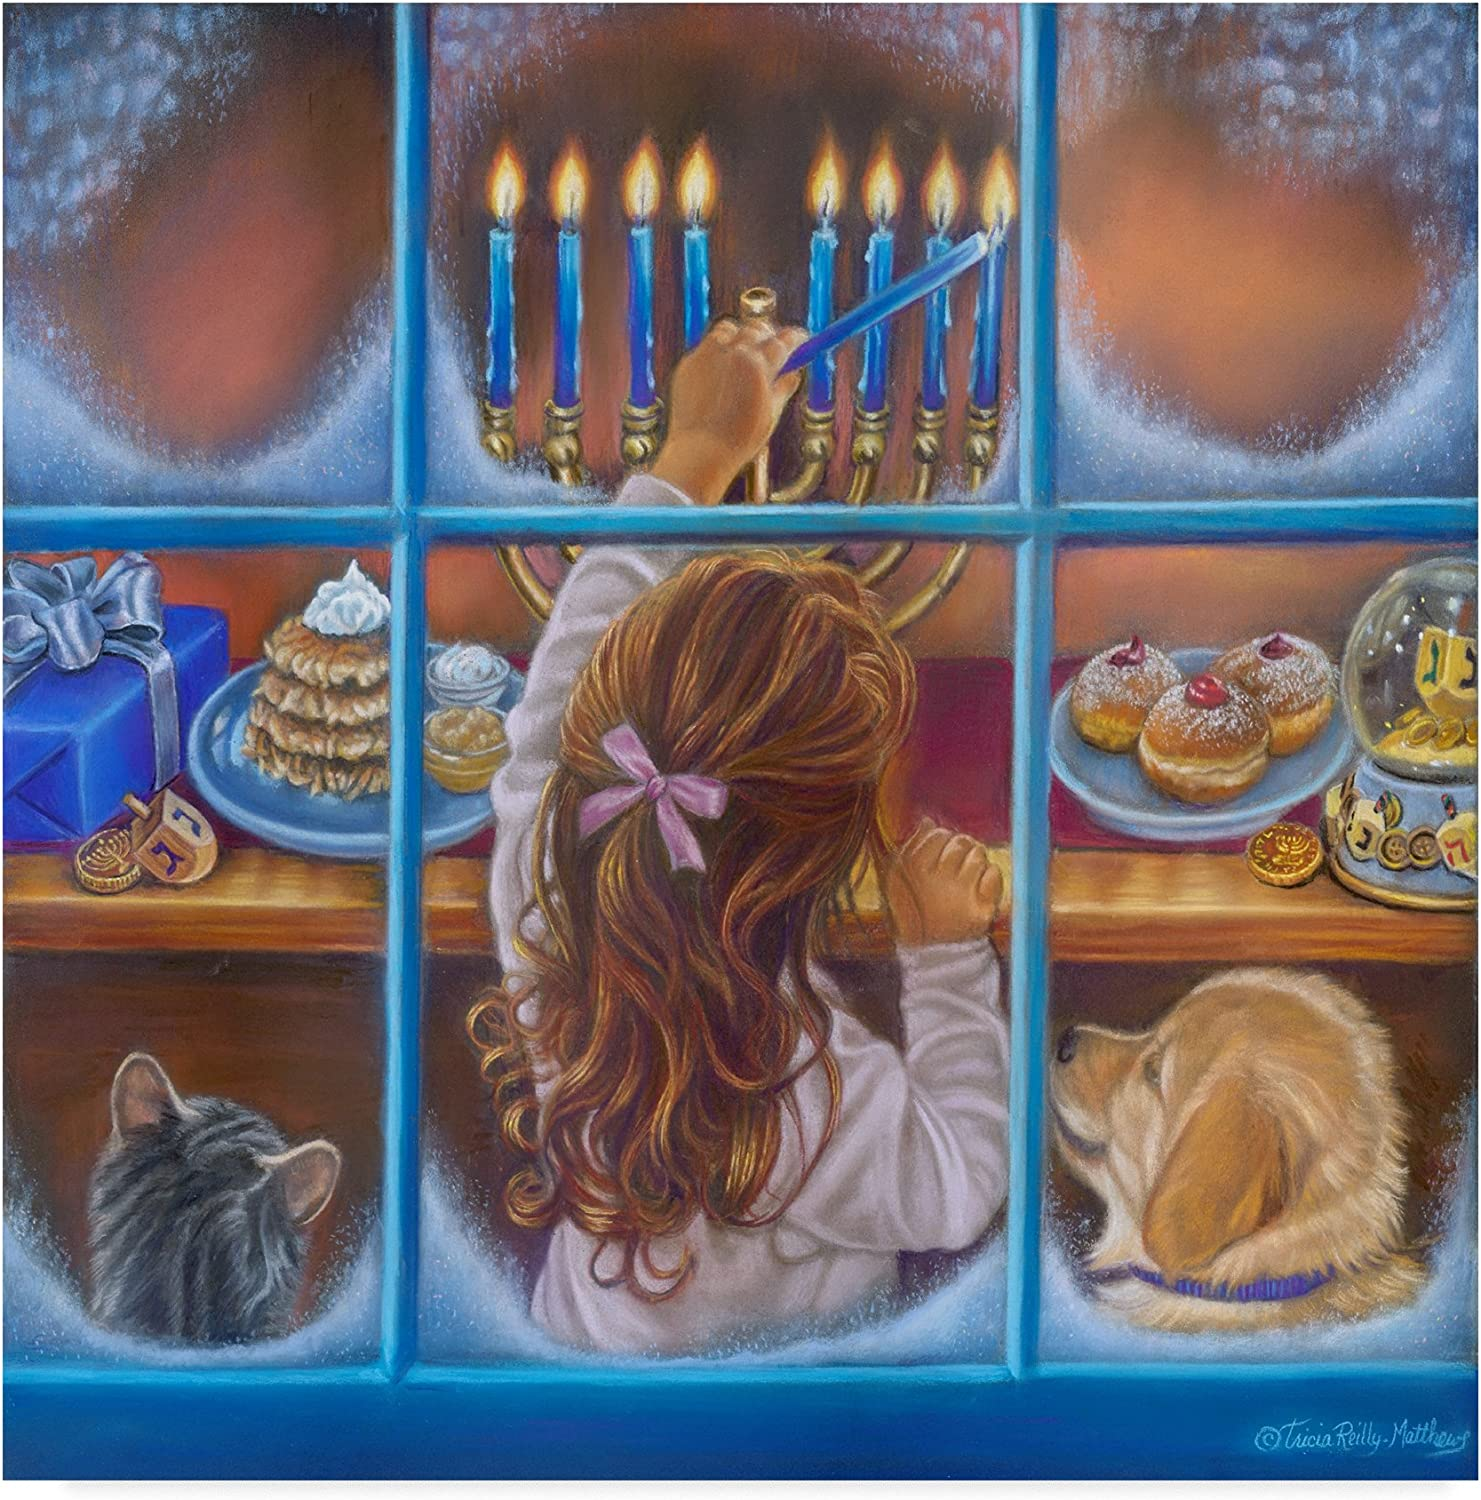 My Hanukah Wish by Tricia Reilly-Matthews, 14x14-Inch